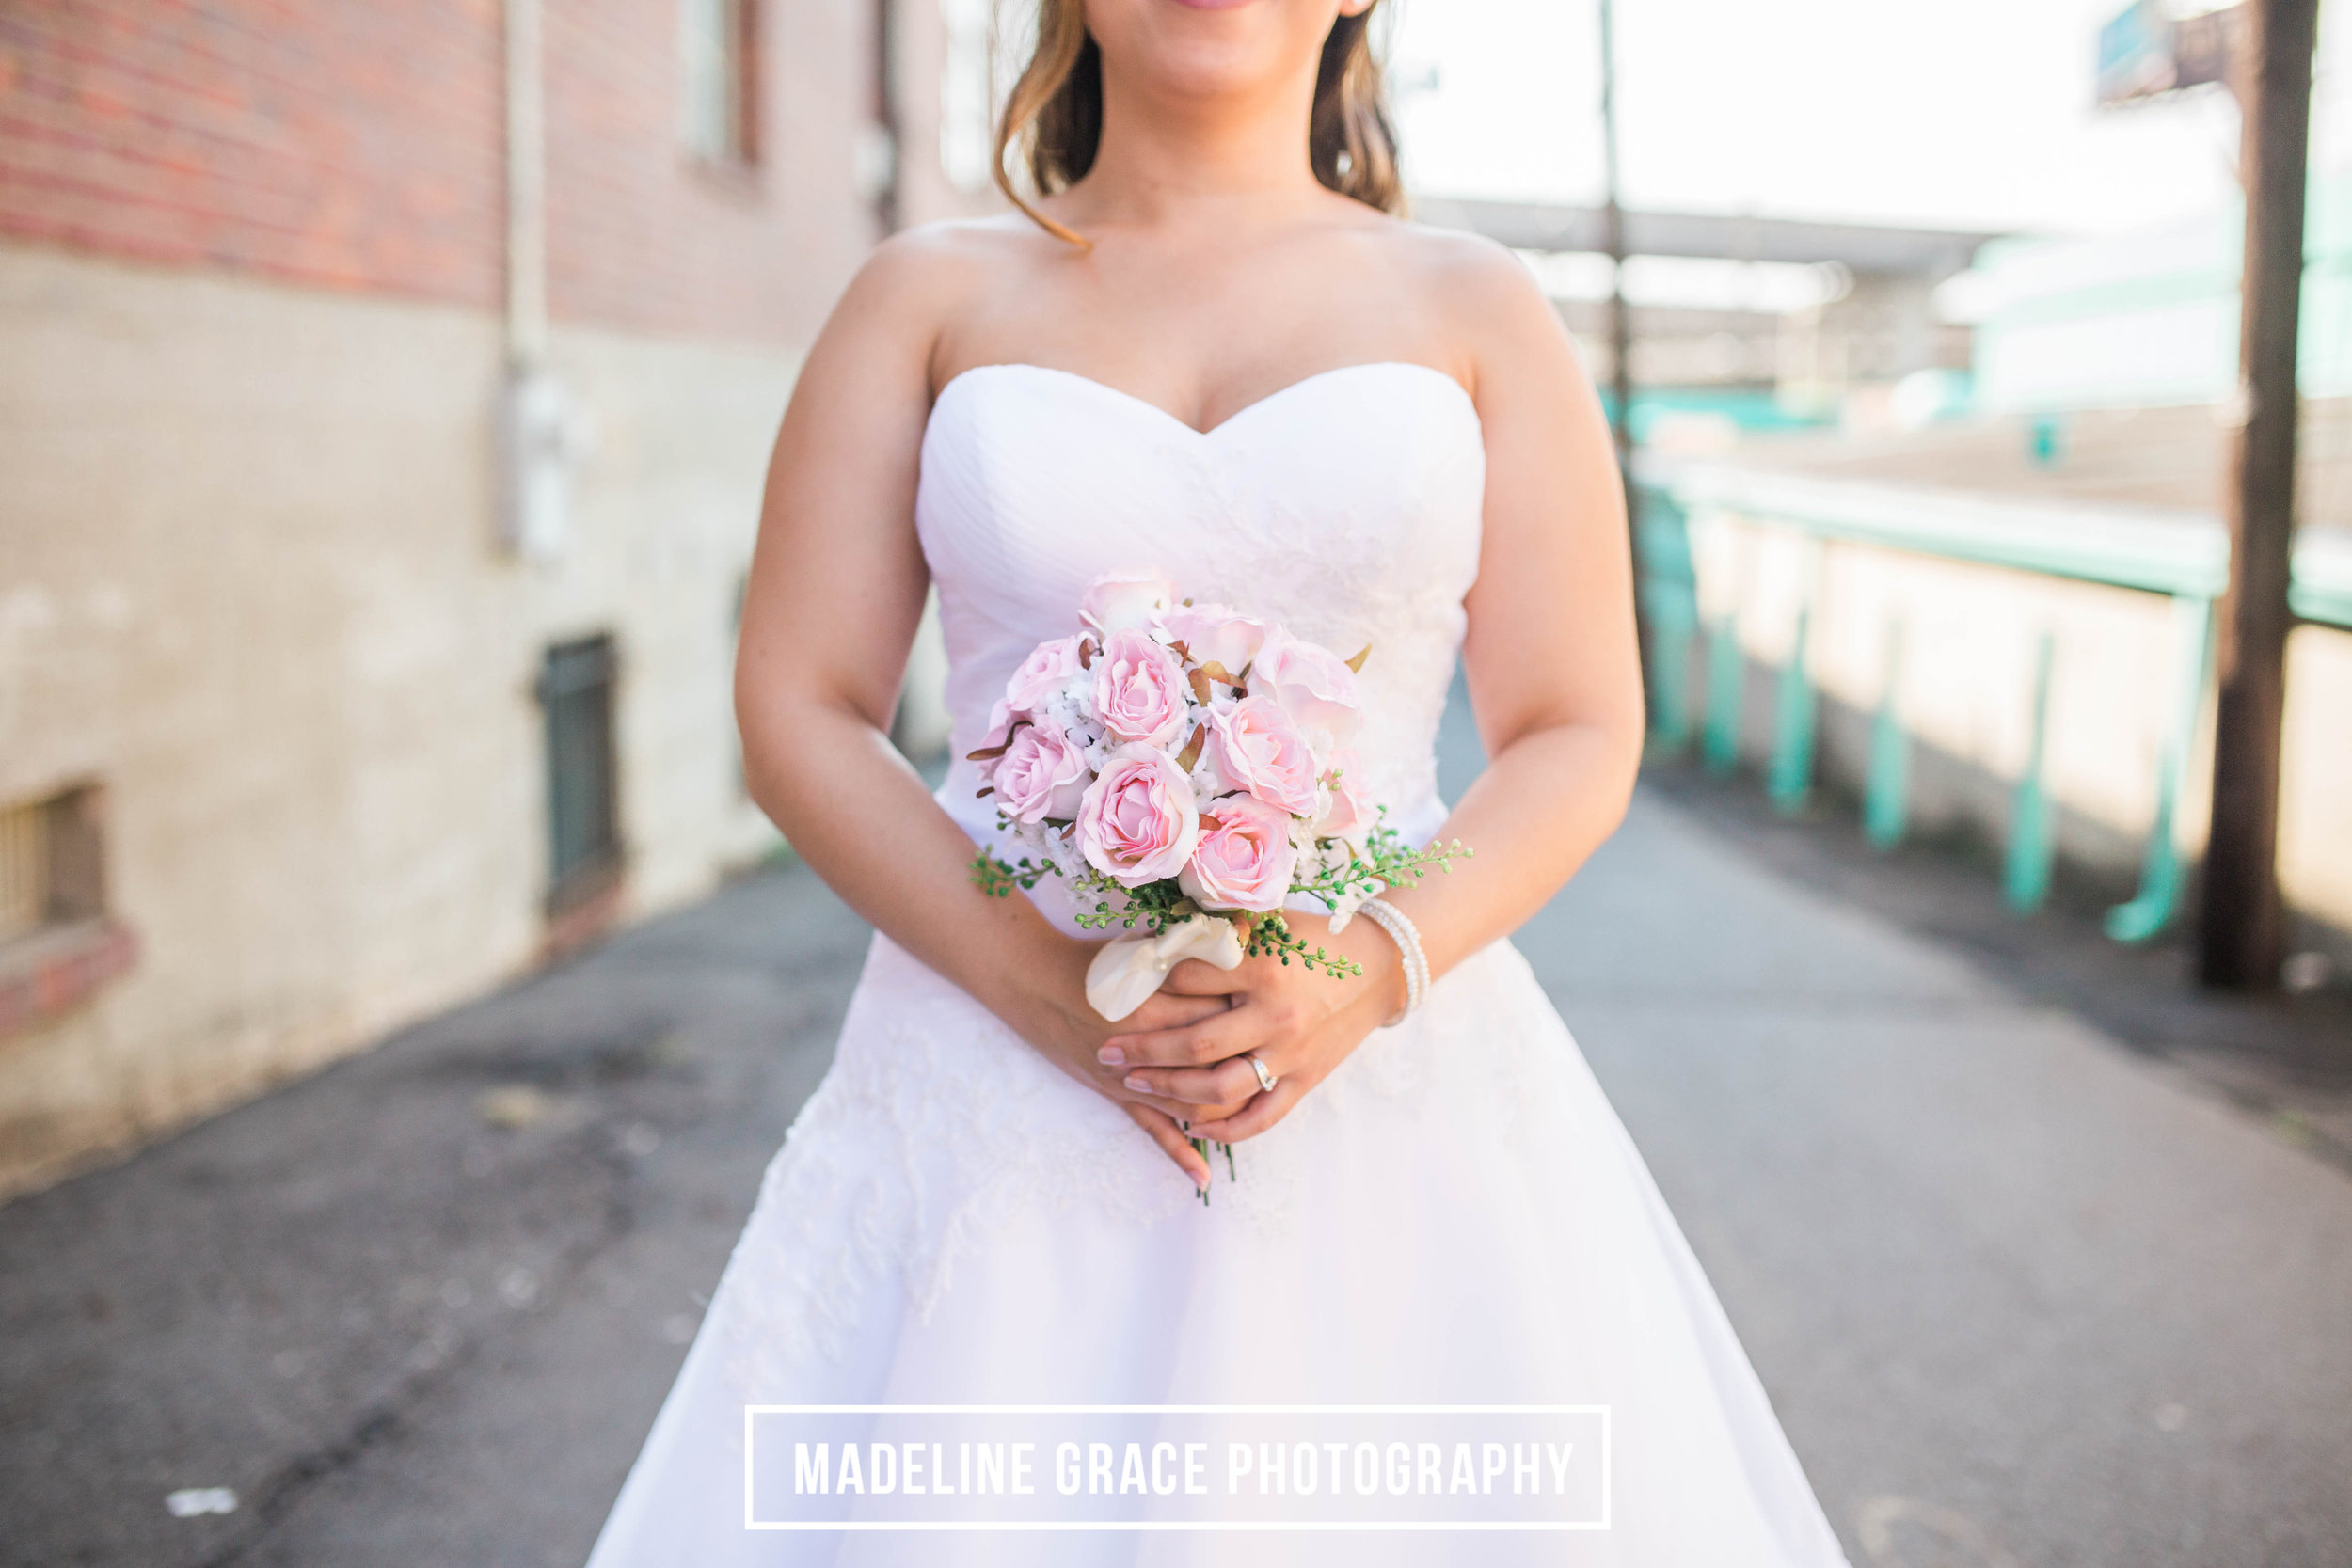 MGP-Sarah-Bridals-45 copy.jpg